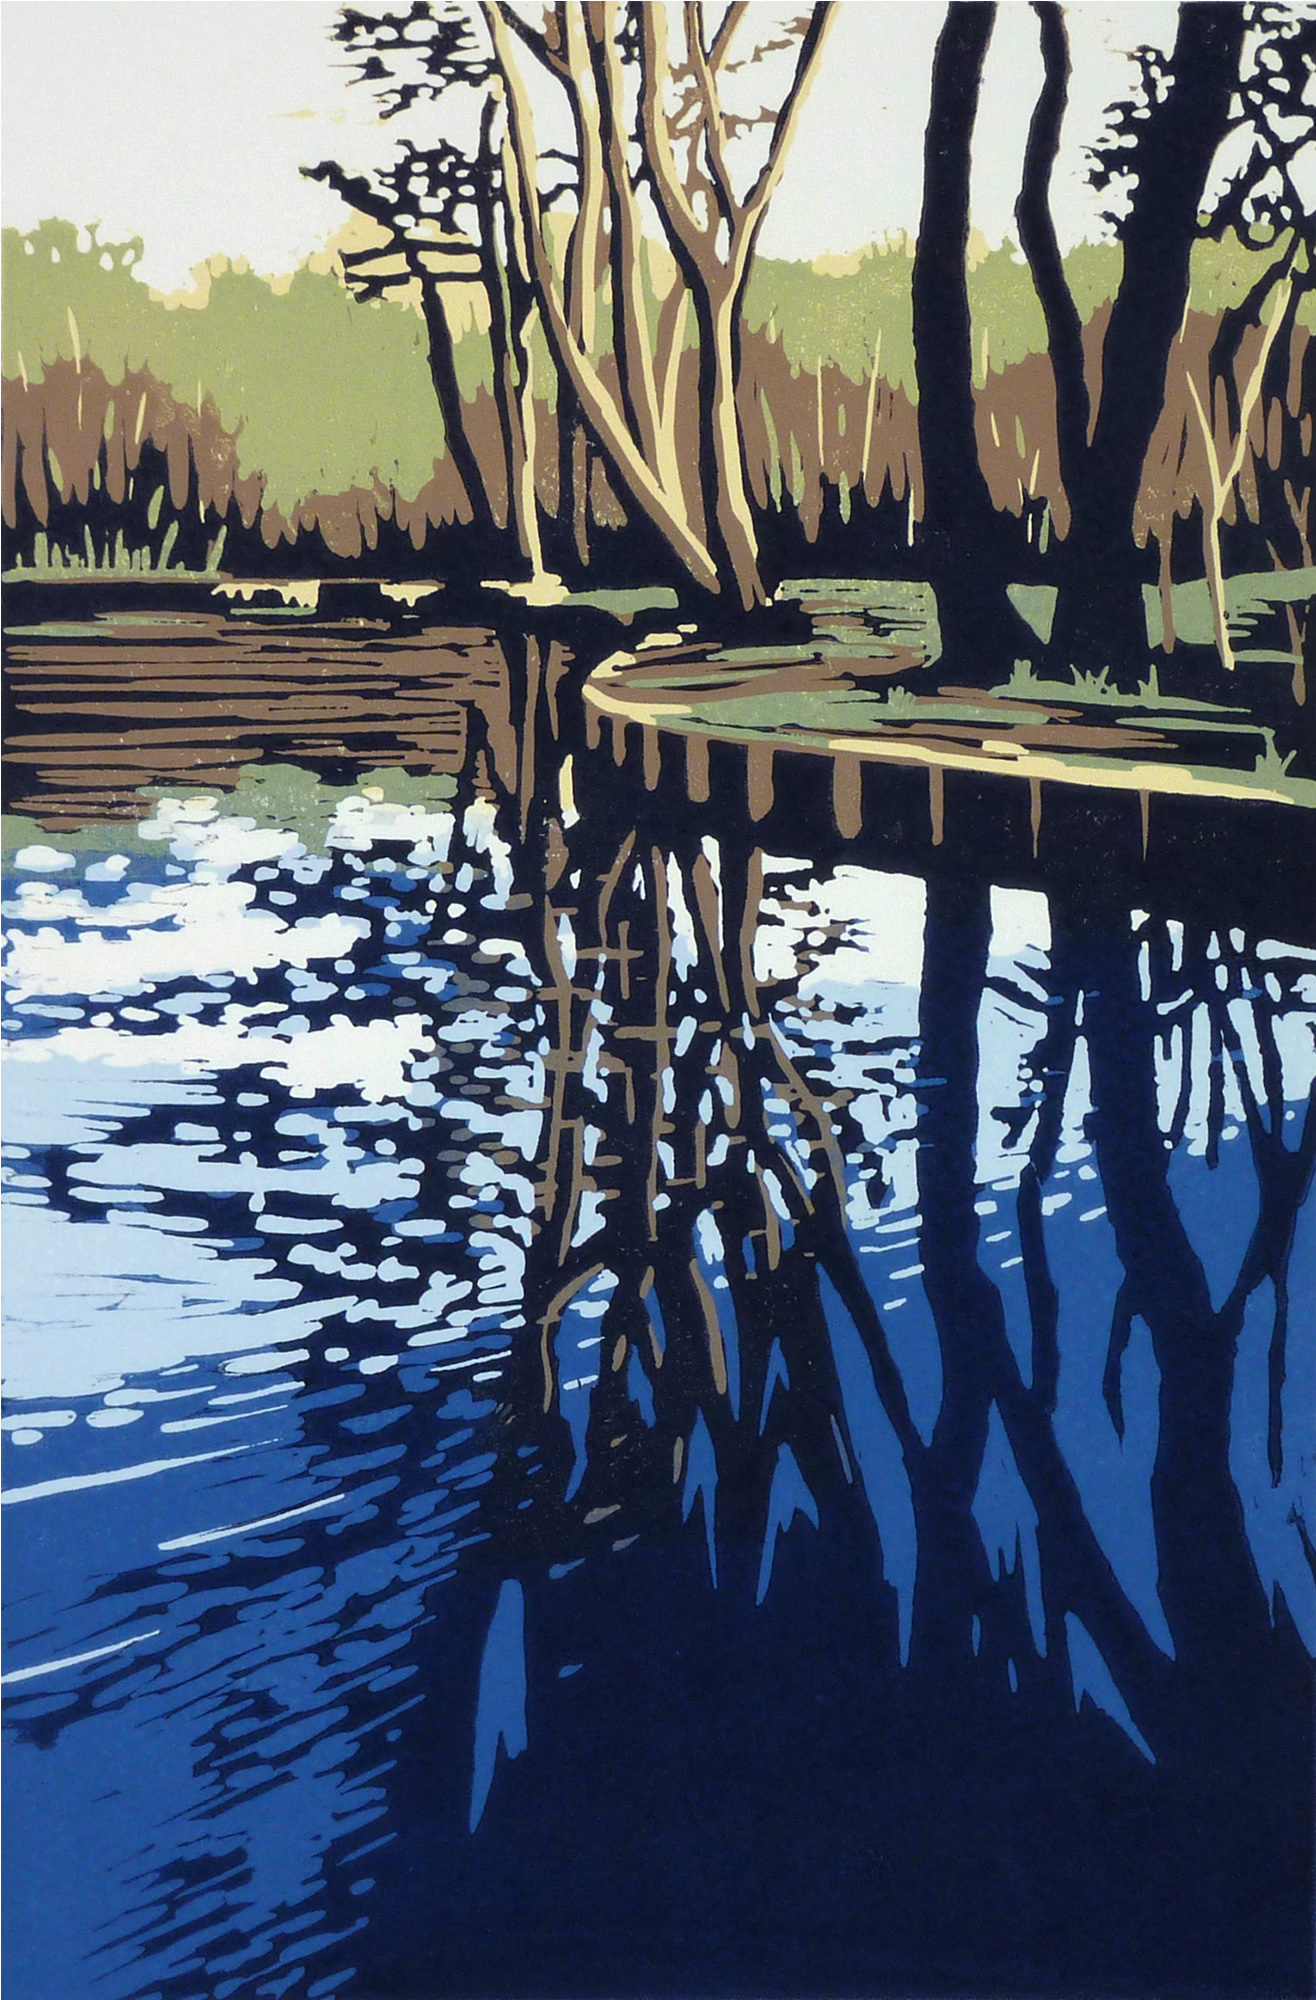 Trow Pool Reflection | 44cm x 34cm |  SOLD OUT  Reduction Linocut